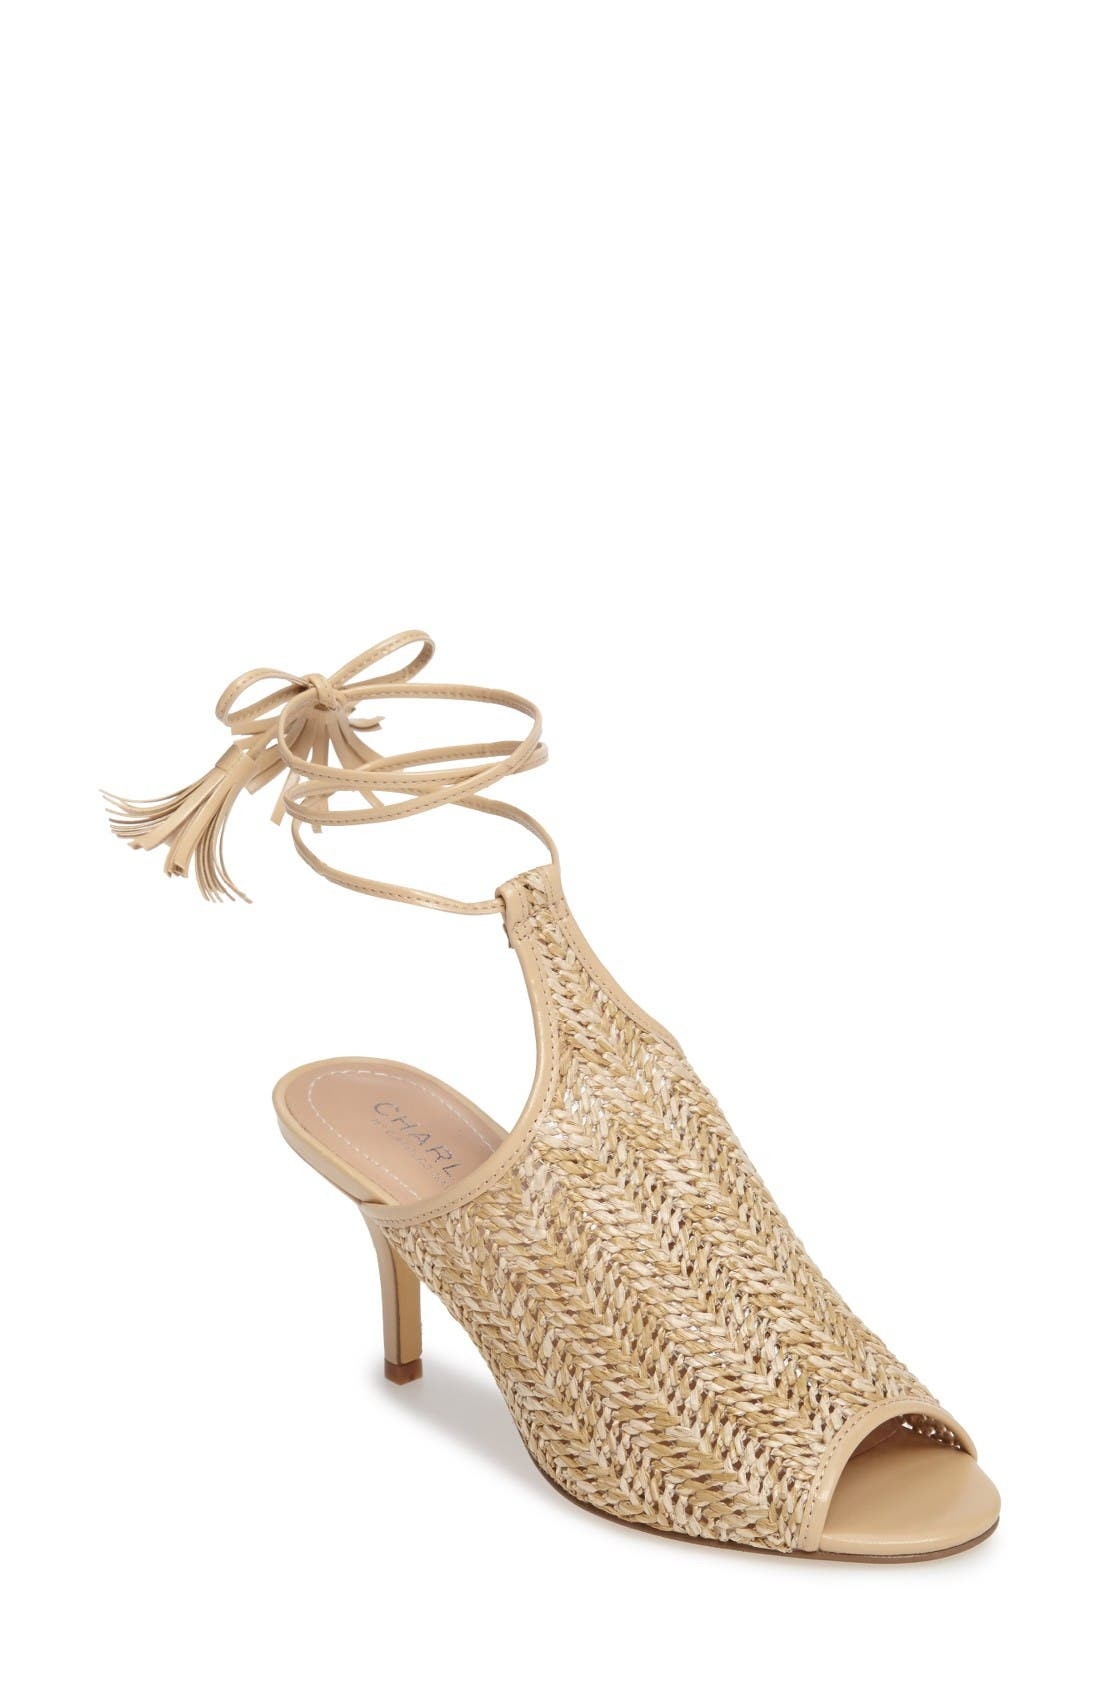 Niko Ankle Tie Sandal,                             Main thumbnail 1, color,                             Natural Basket Woven Fabric